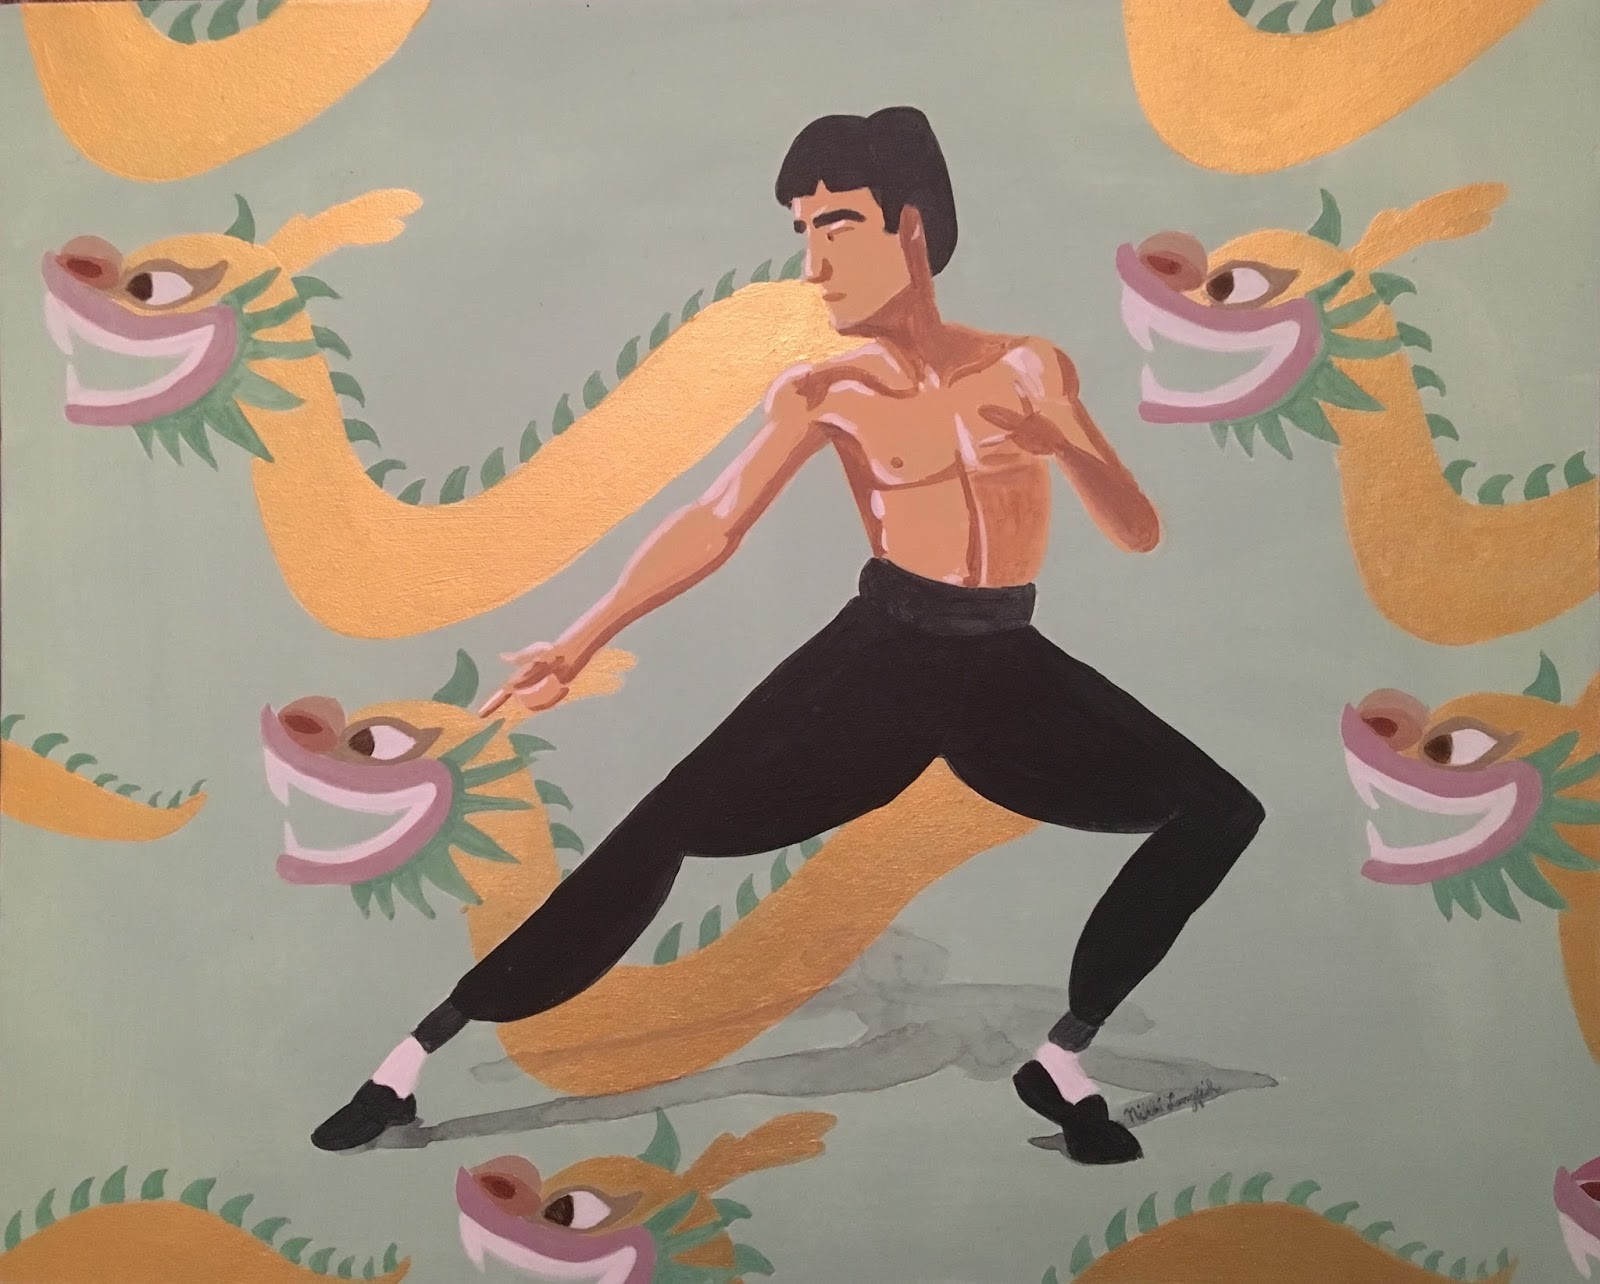 Nikki's sketches: Bruce Lee Art Show at Sketchpad Gallery